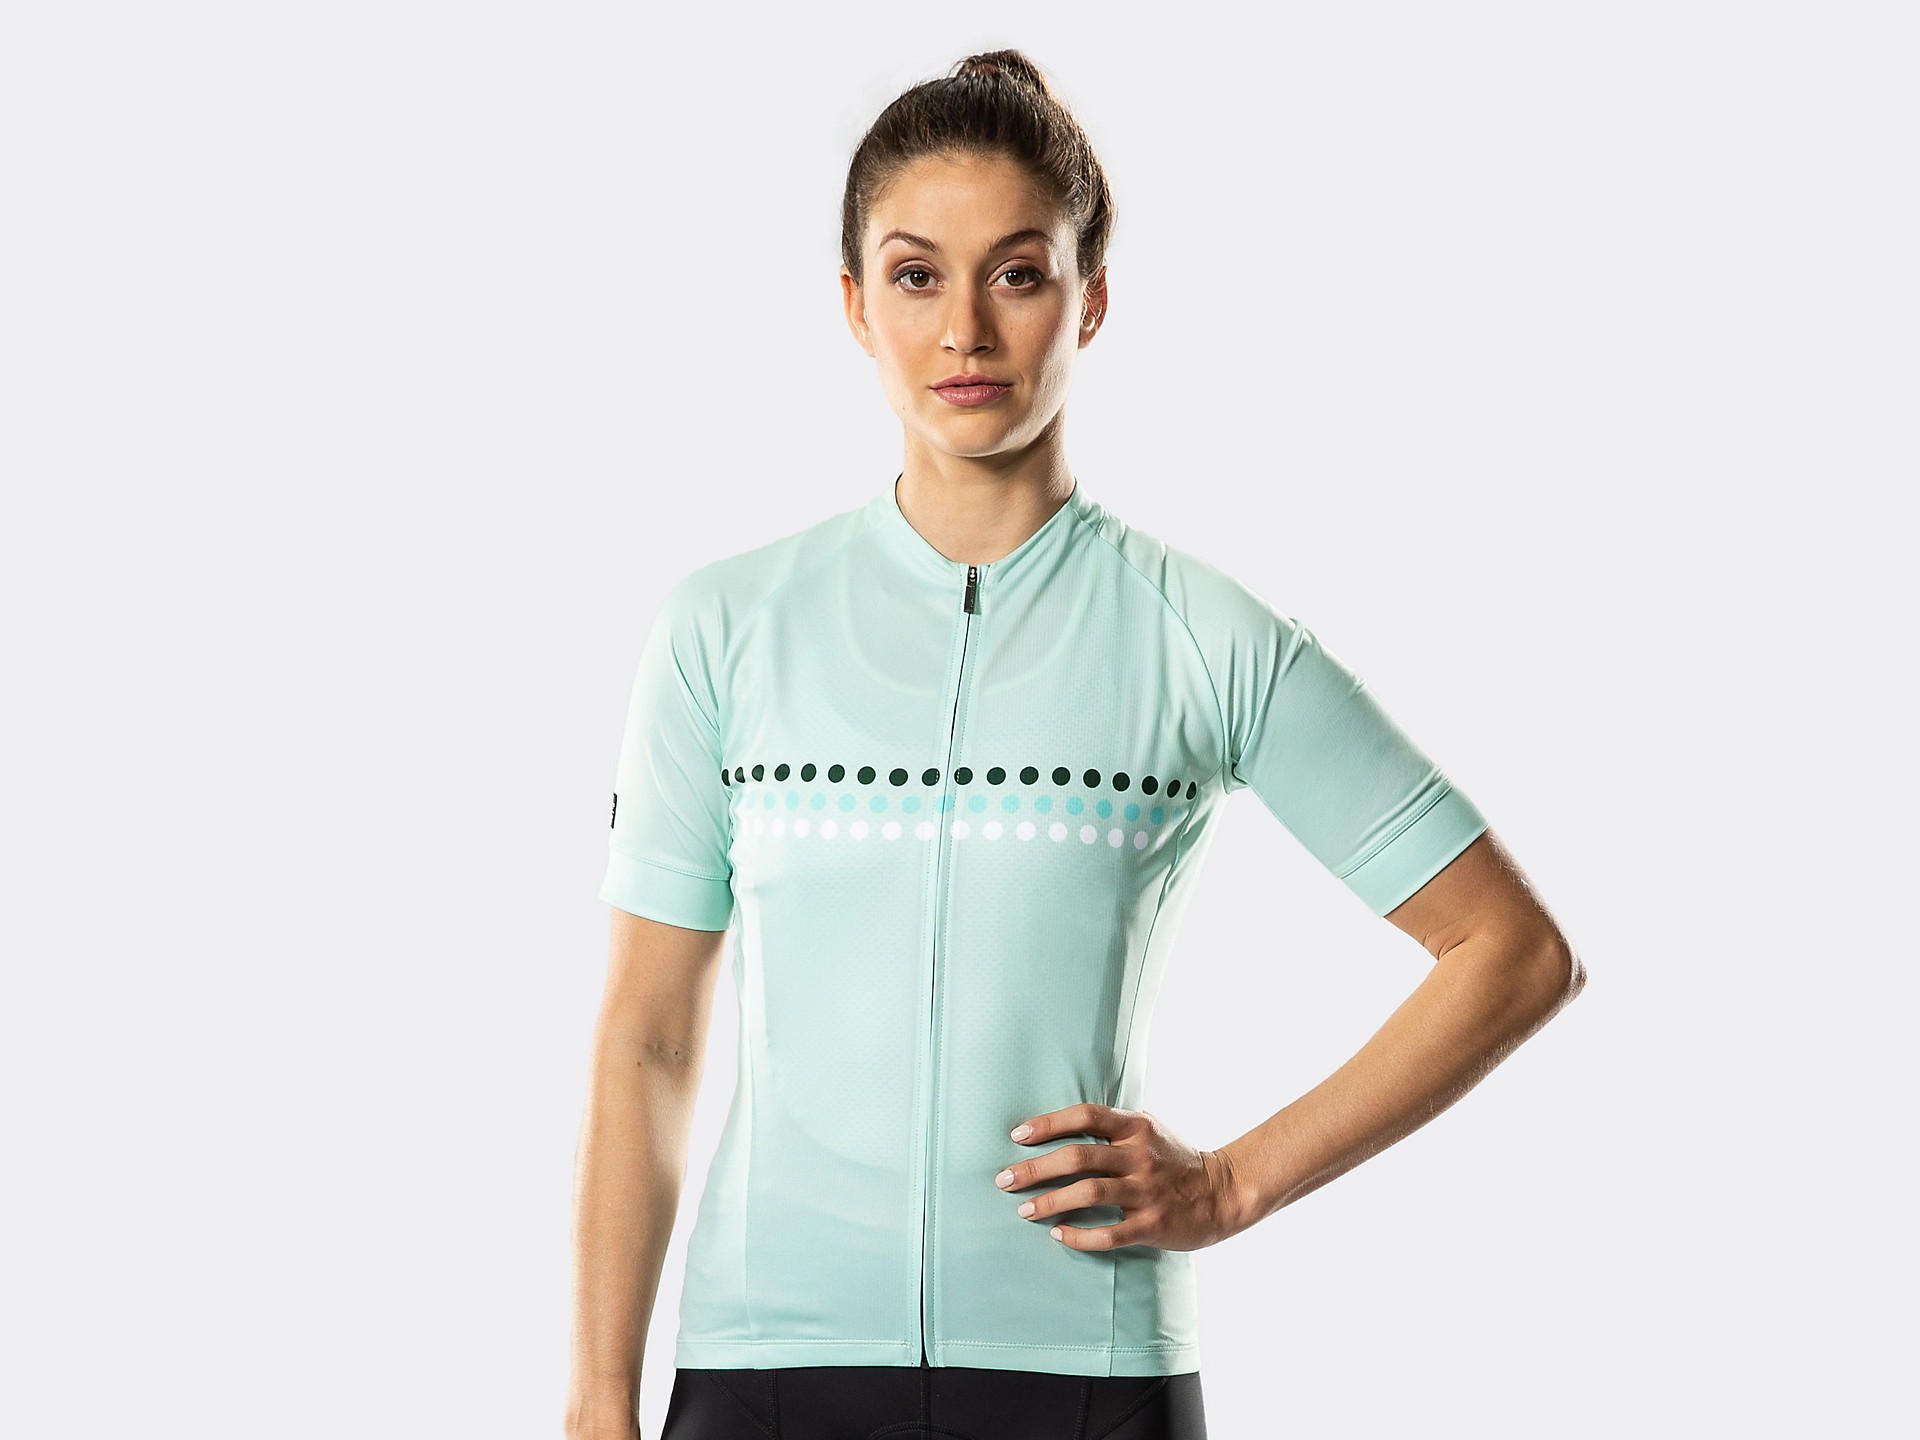 Bontrager Anara LTD Women s Cycling Jersey 7b5e03cba